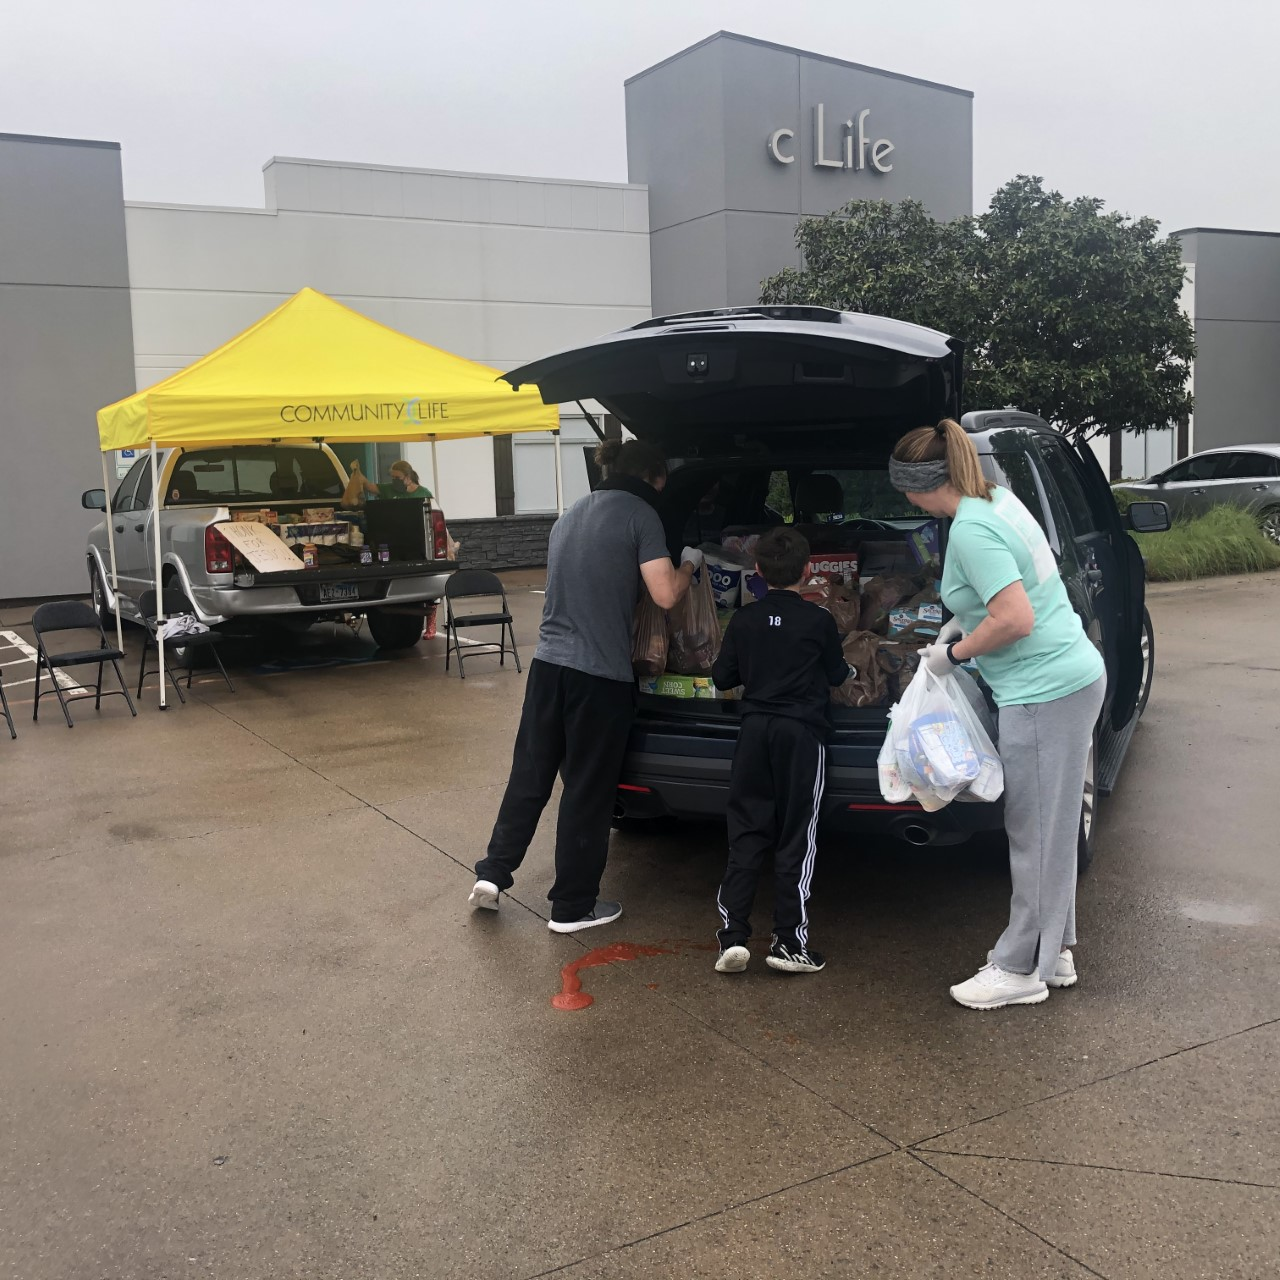 Dropping-off-donation-at-CLife-in-Forney-TX